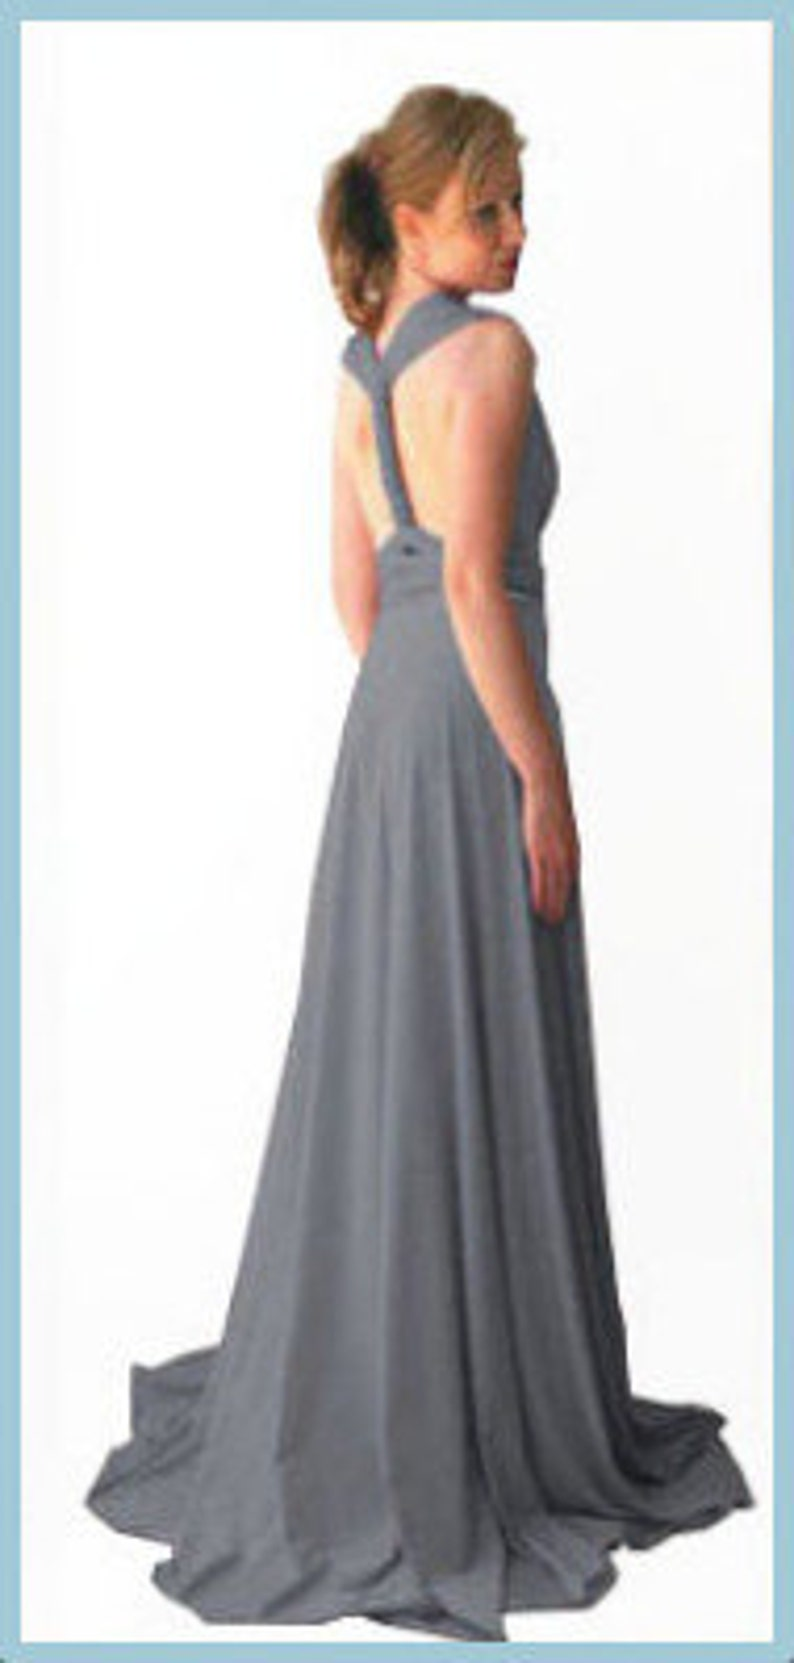 465453cc4d8 Middle gray Infinity Dress Bridesmaids dress with free